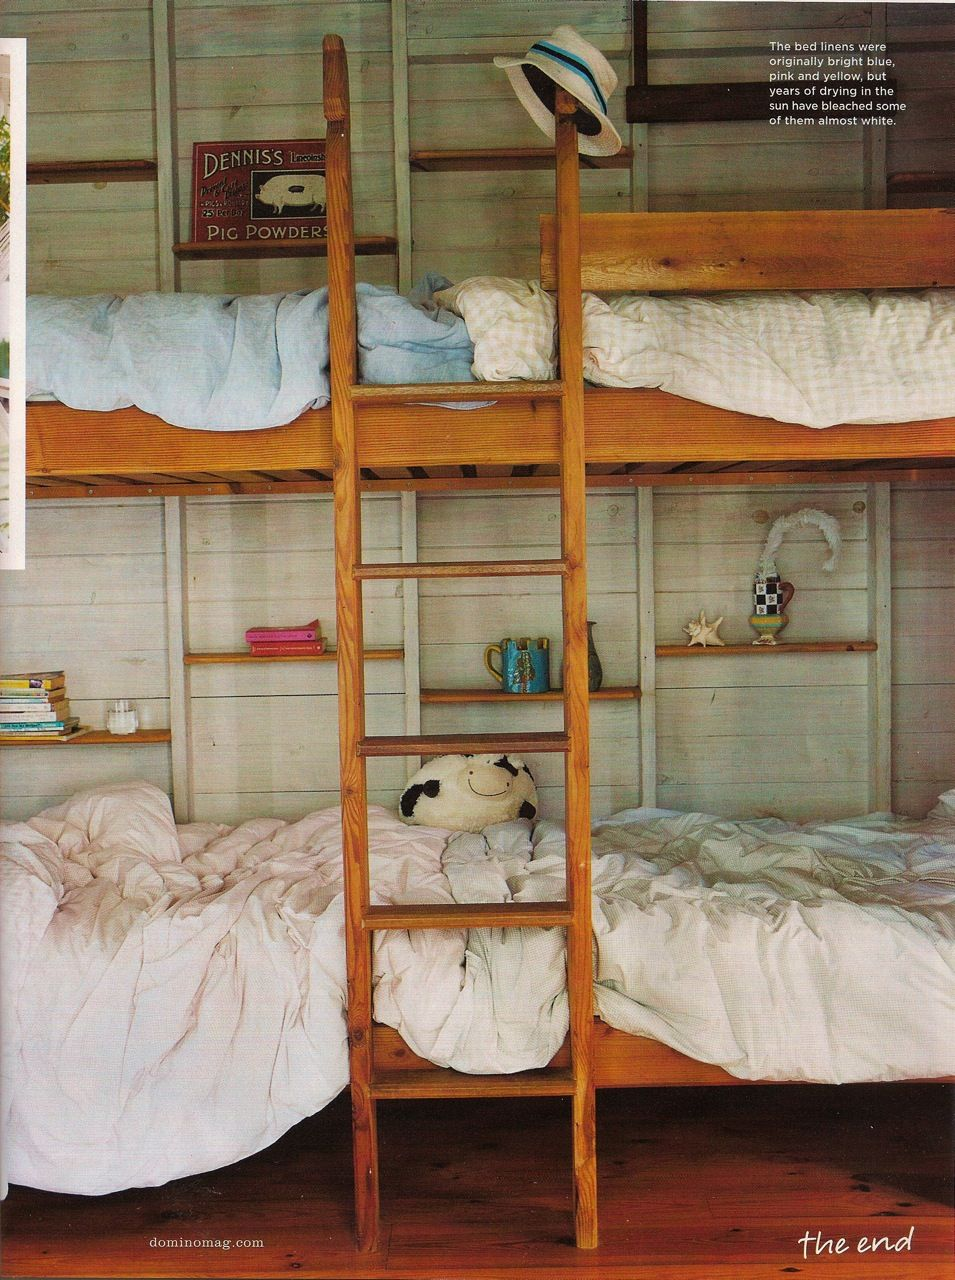 Loft bedroom ideas for boys  Pin by Anna on perhaps perhaps perhaps  Pinterest  Lofts Linens